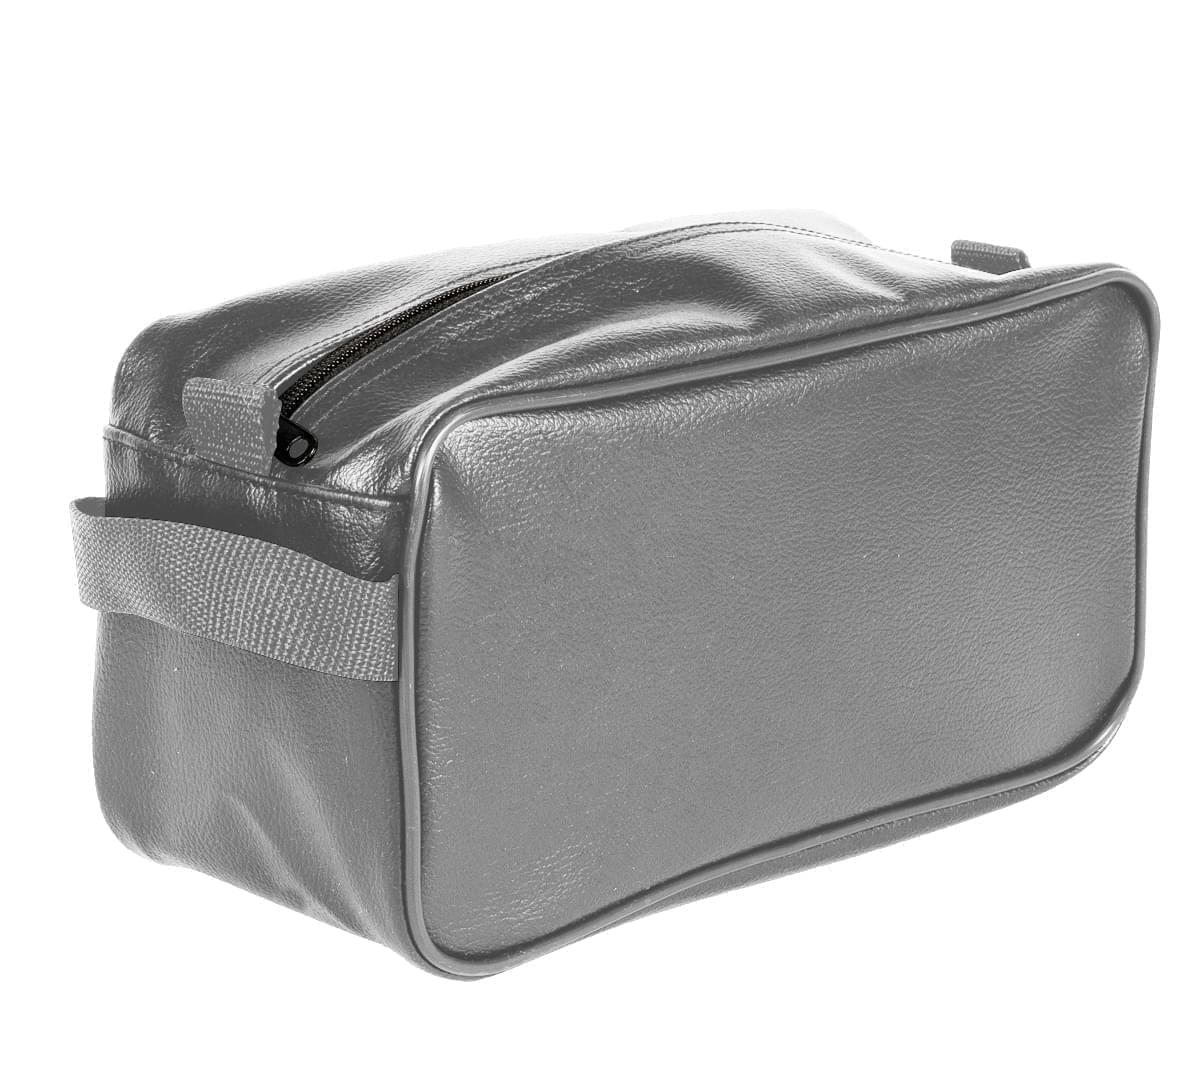 USA Made Cosmetic & Toiletry Cases, Grey-Grey, 3000996-A1U